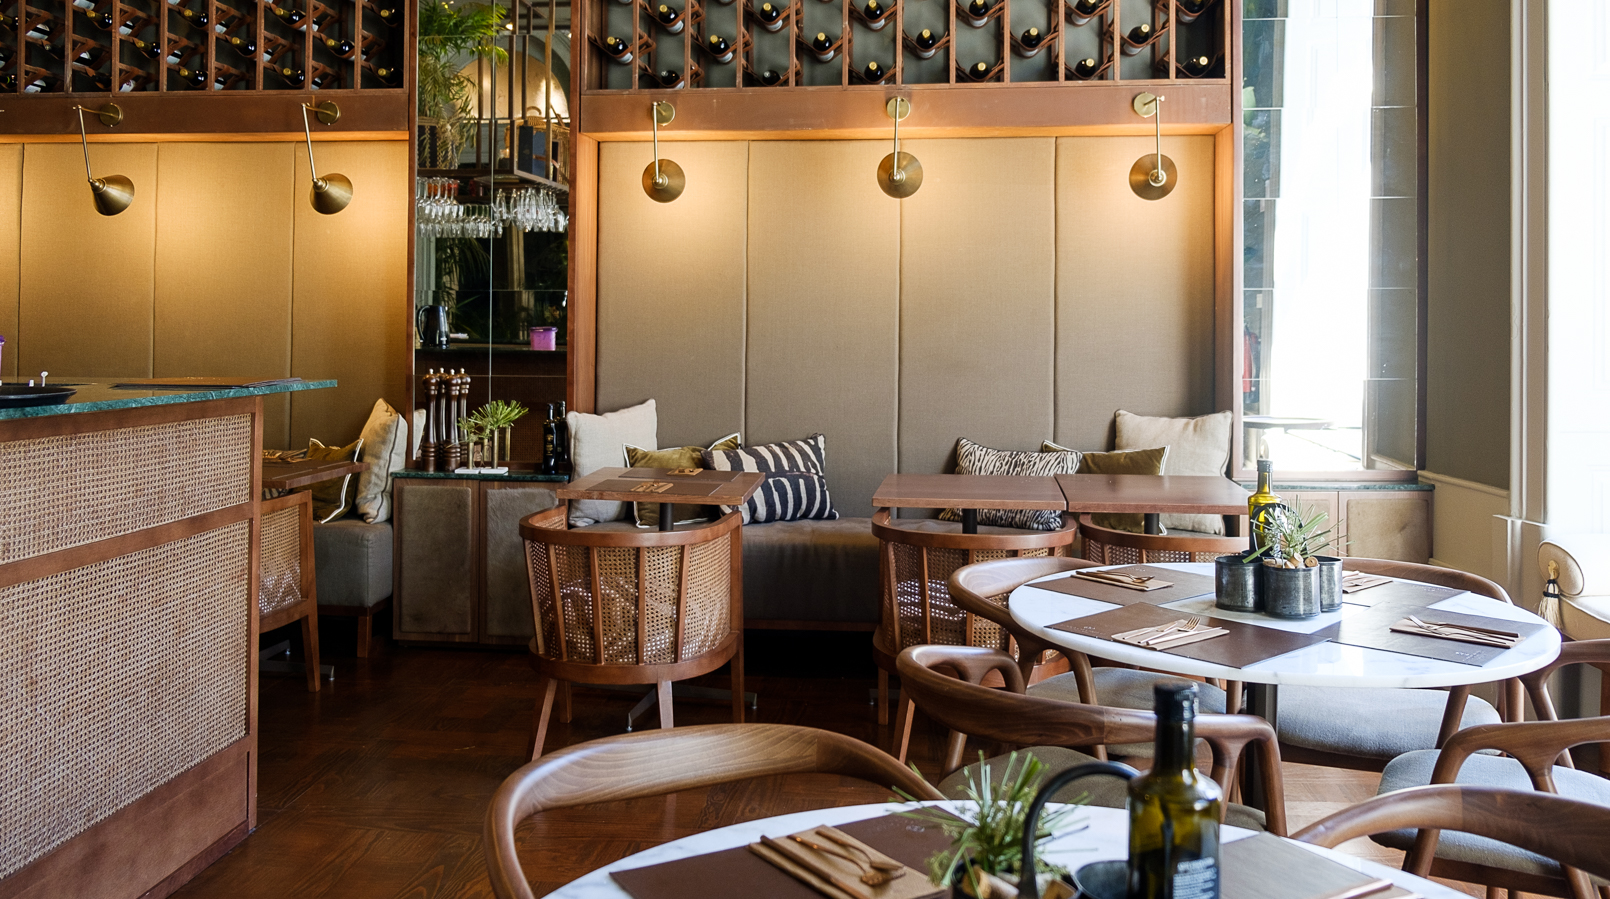 Le Fashionaire Bartolomeu Bistro & Wine: There's a new cool spot in Oporto bartolomeu wine bistro torel restaurant tables marble 8802F EN